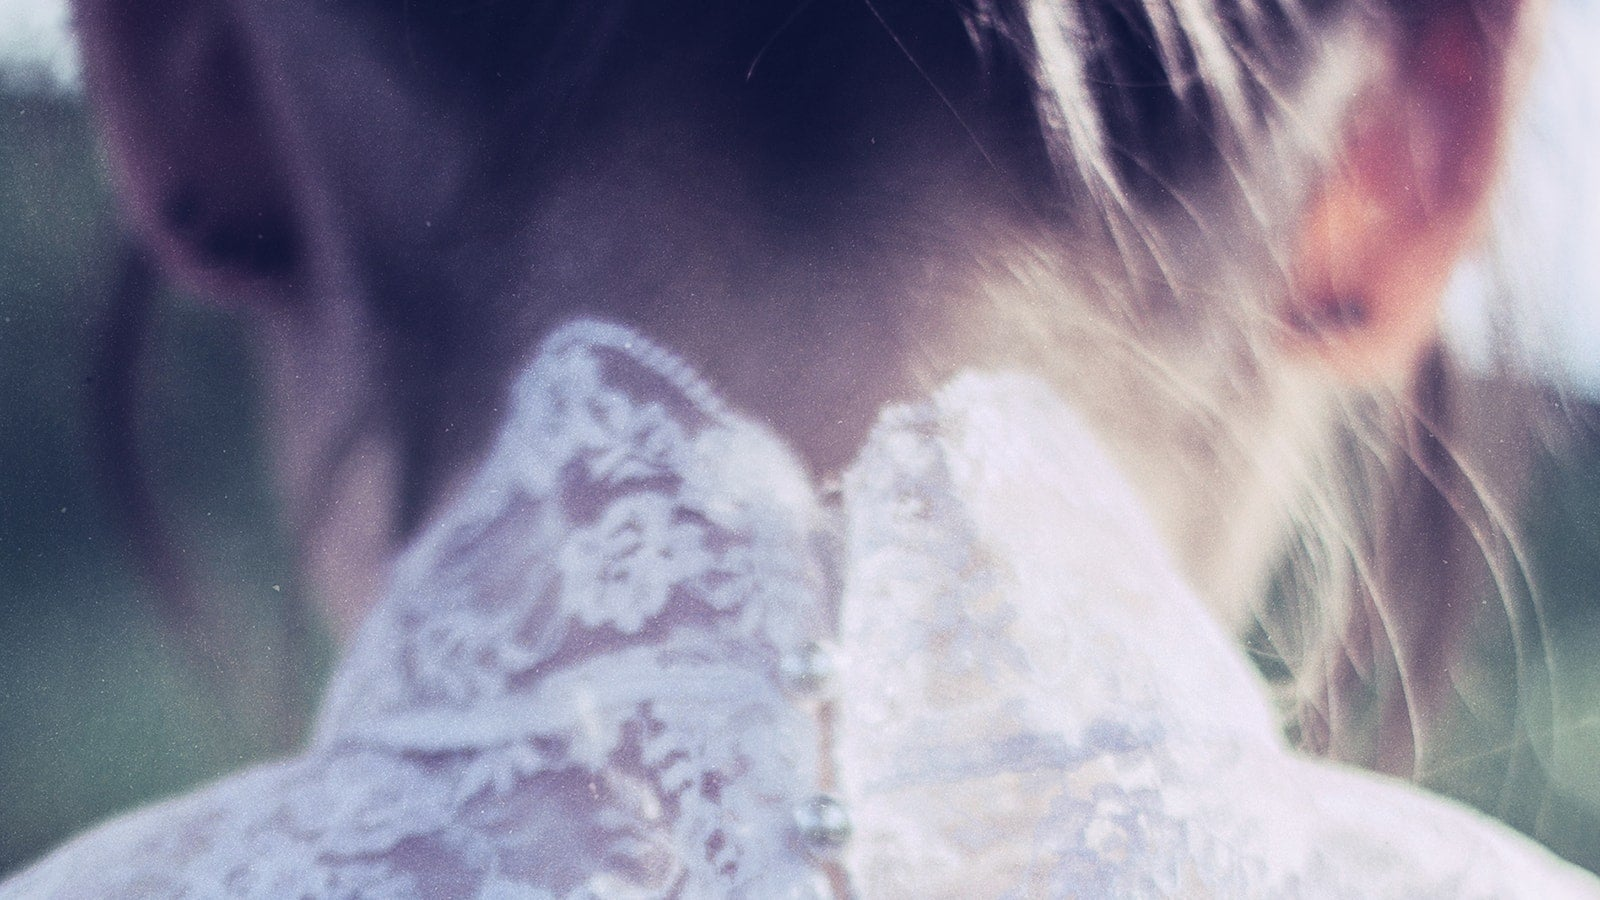 Image of the back of a woman's head in white dress, from the cover of The Woman in White